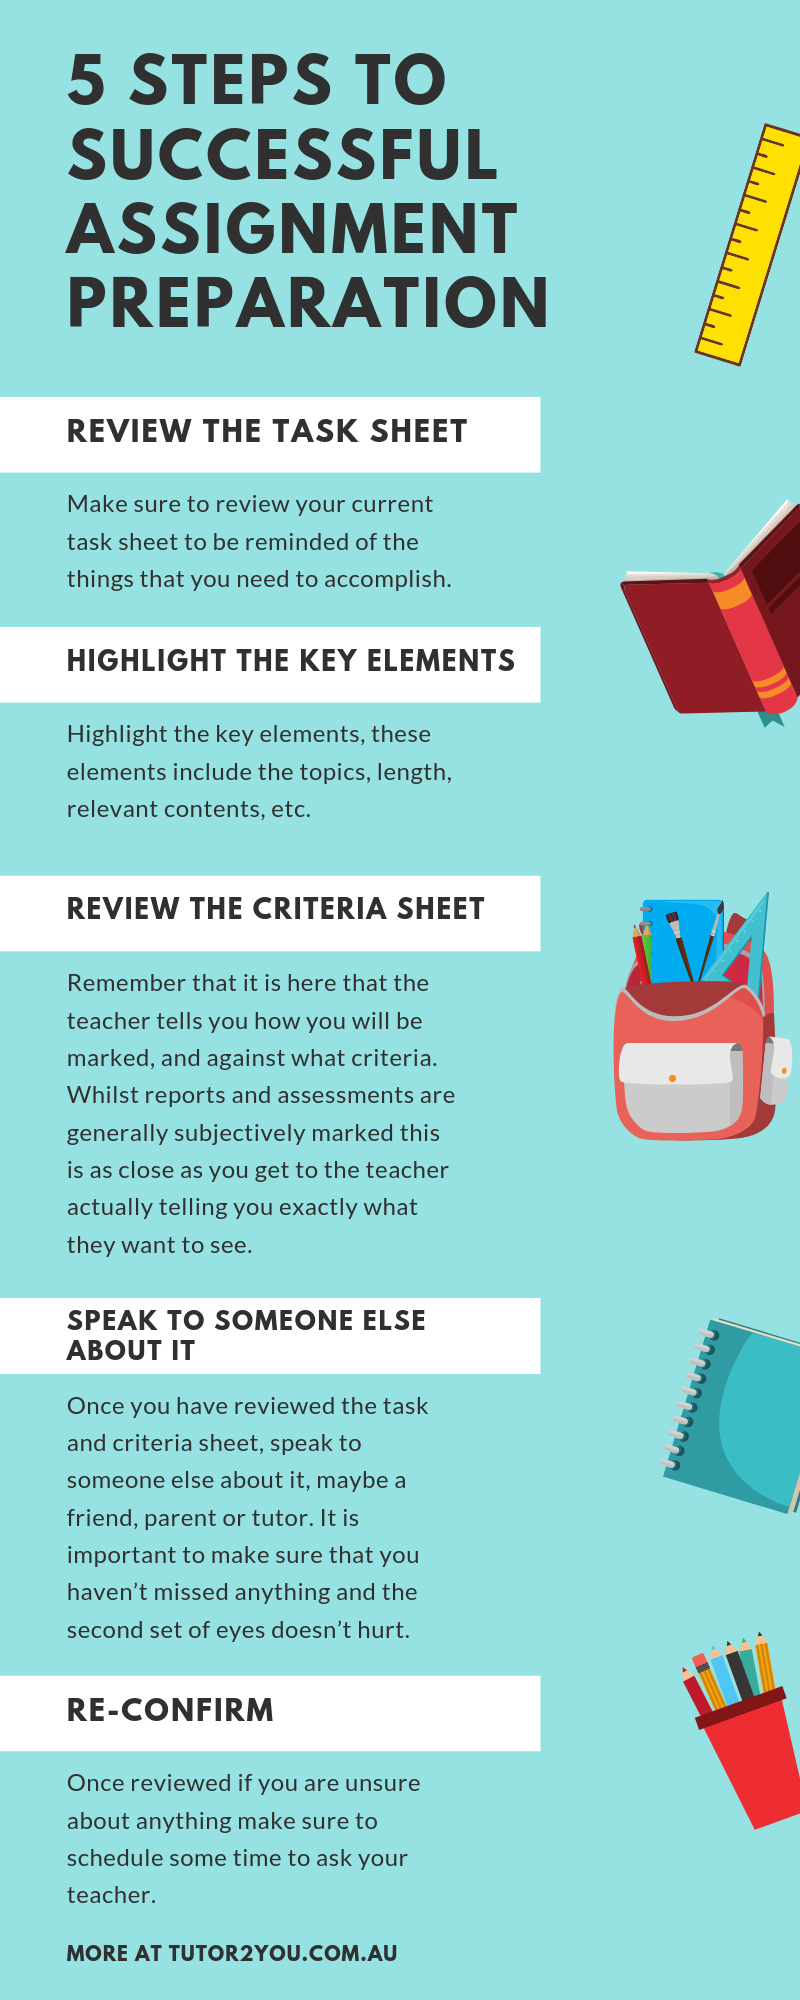 5 steps to successful assignment preparation - educational infographic | tutor2you